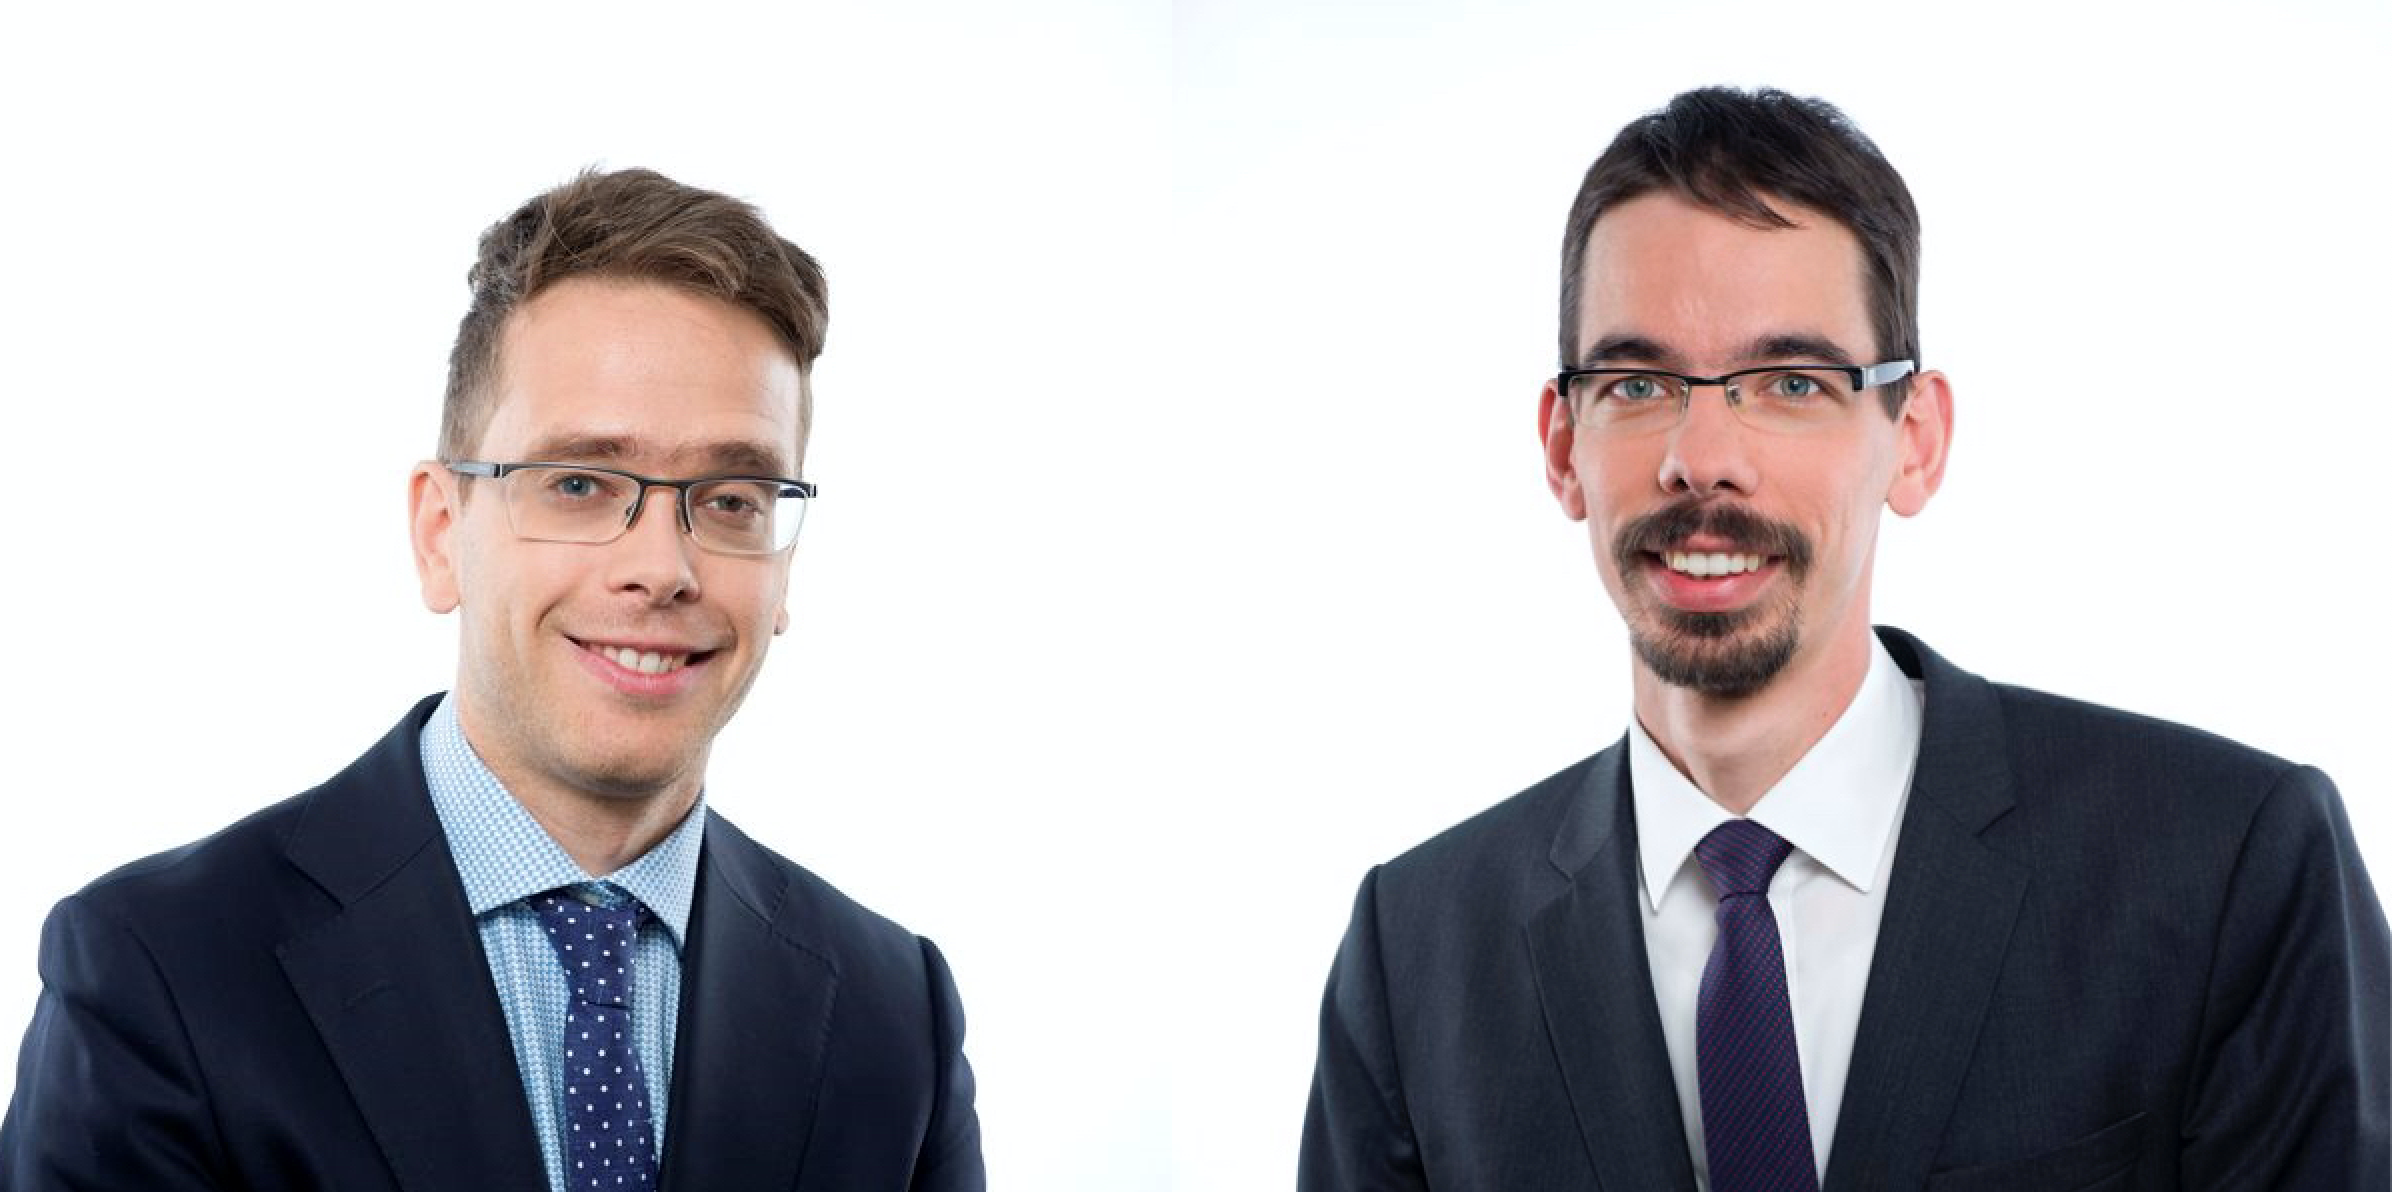 Szecskay Attorneys at Law appoints new partners